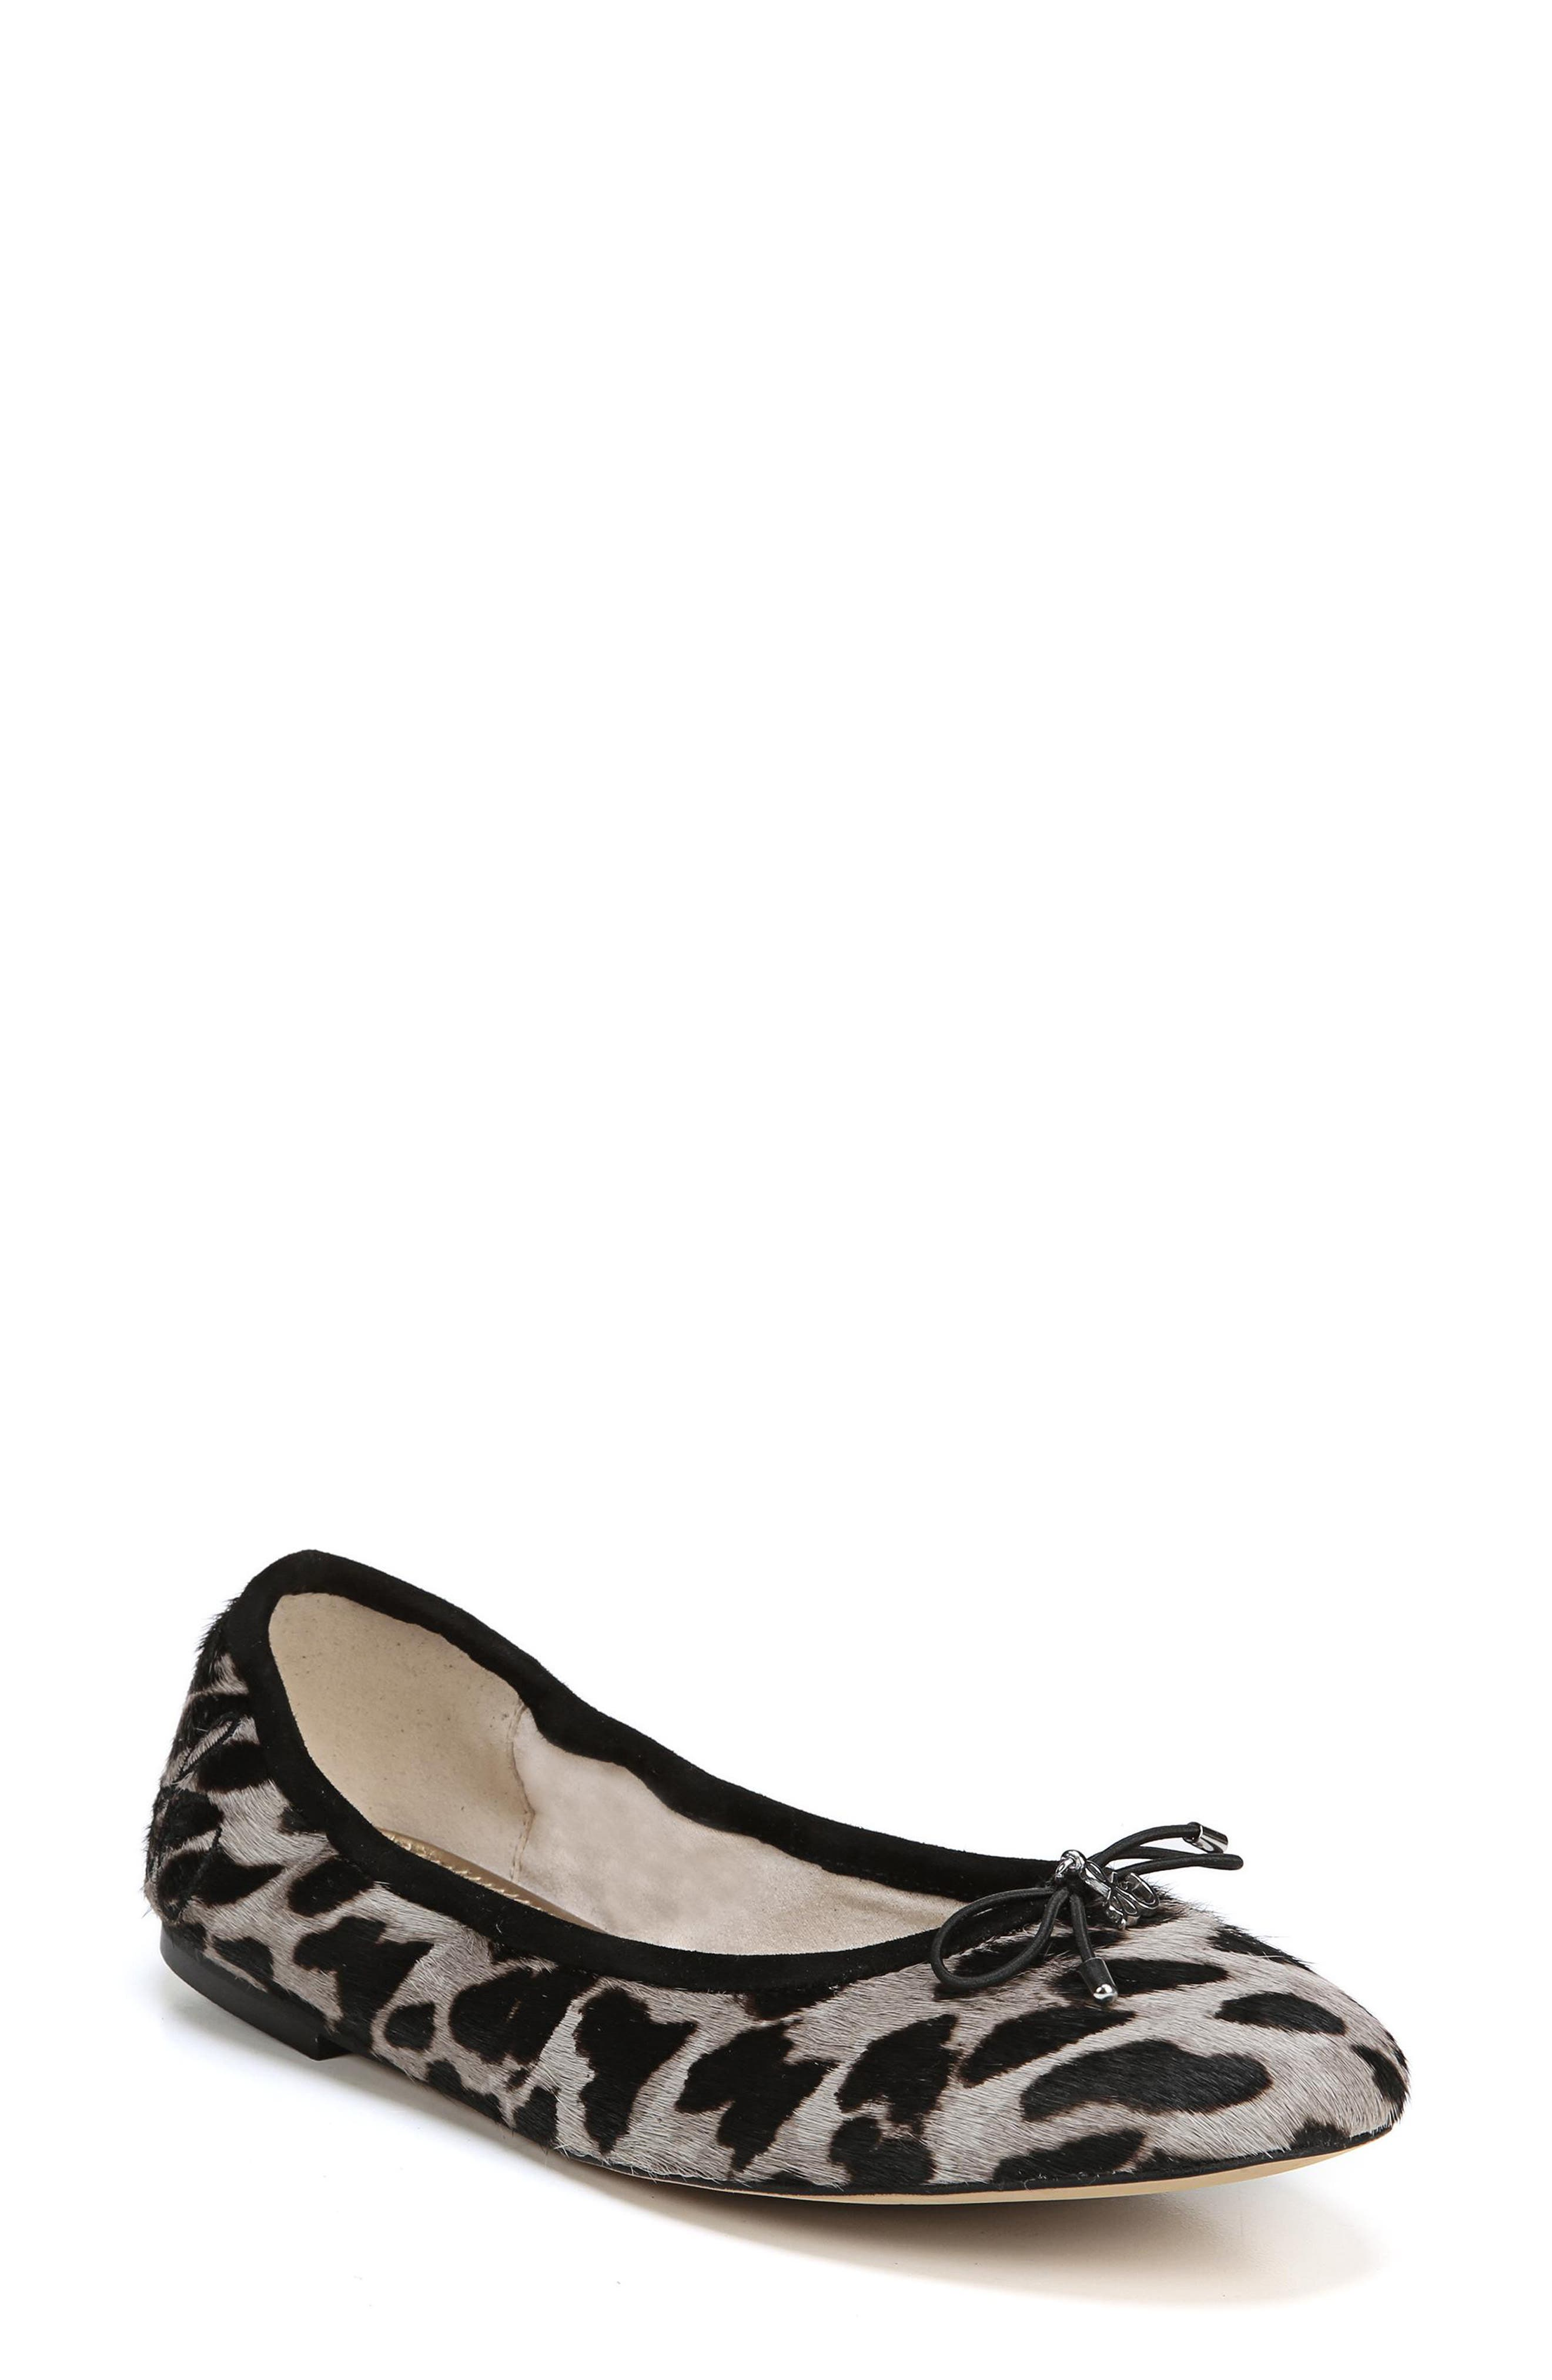 SAM EDELMAN, Felicia Flat, Main thumbnail 1, color, CLOUDED LEOPARD BRAHMA HAIR